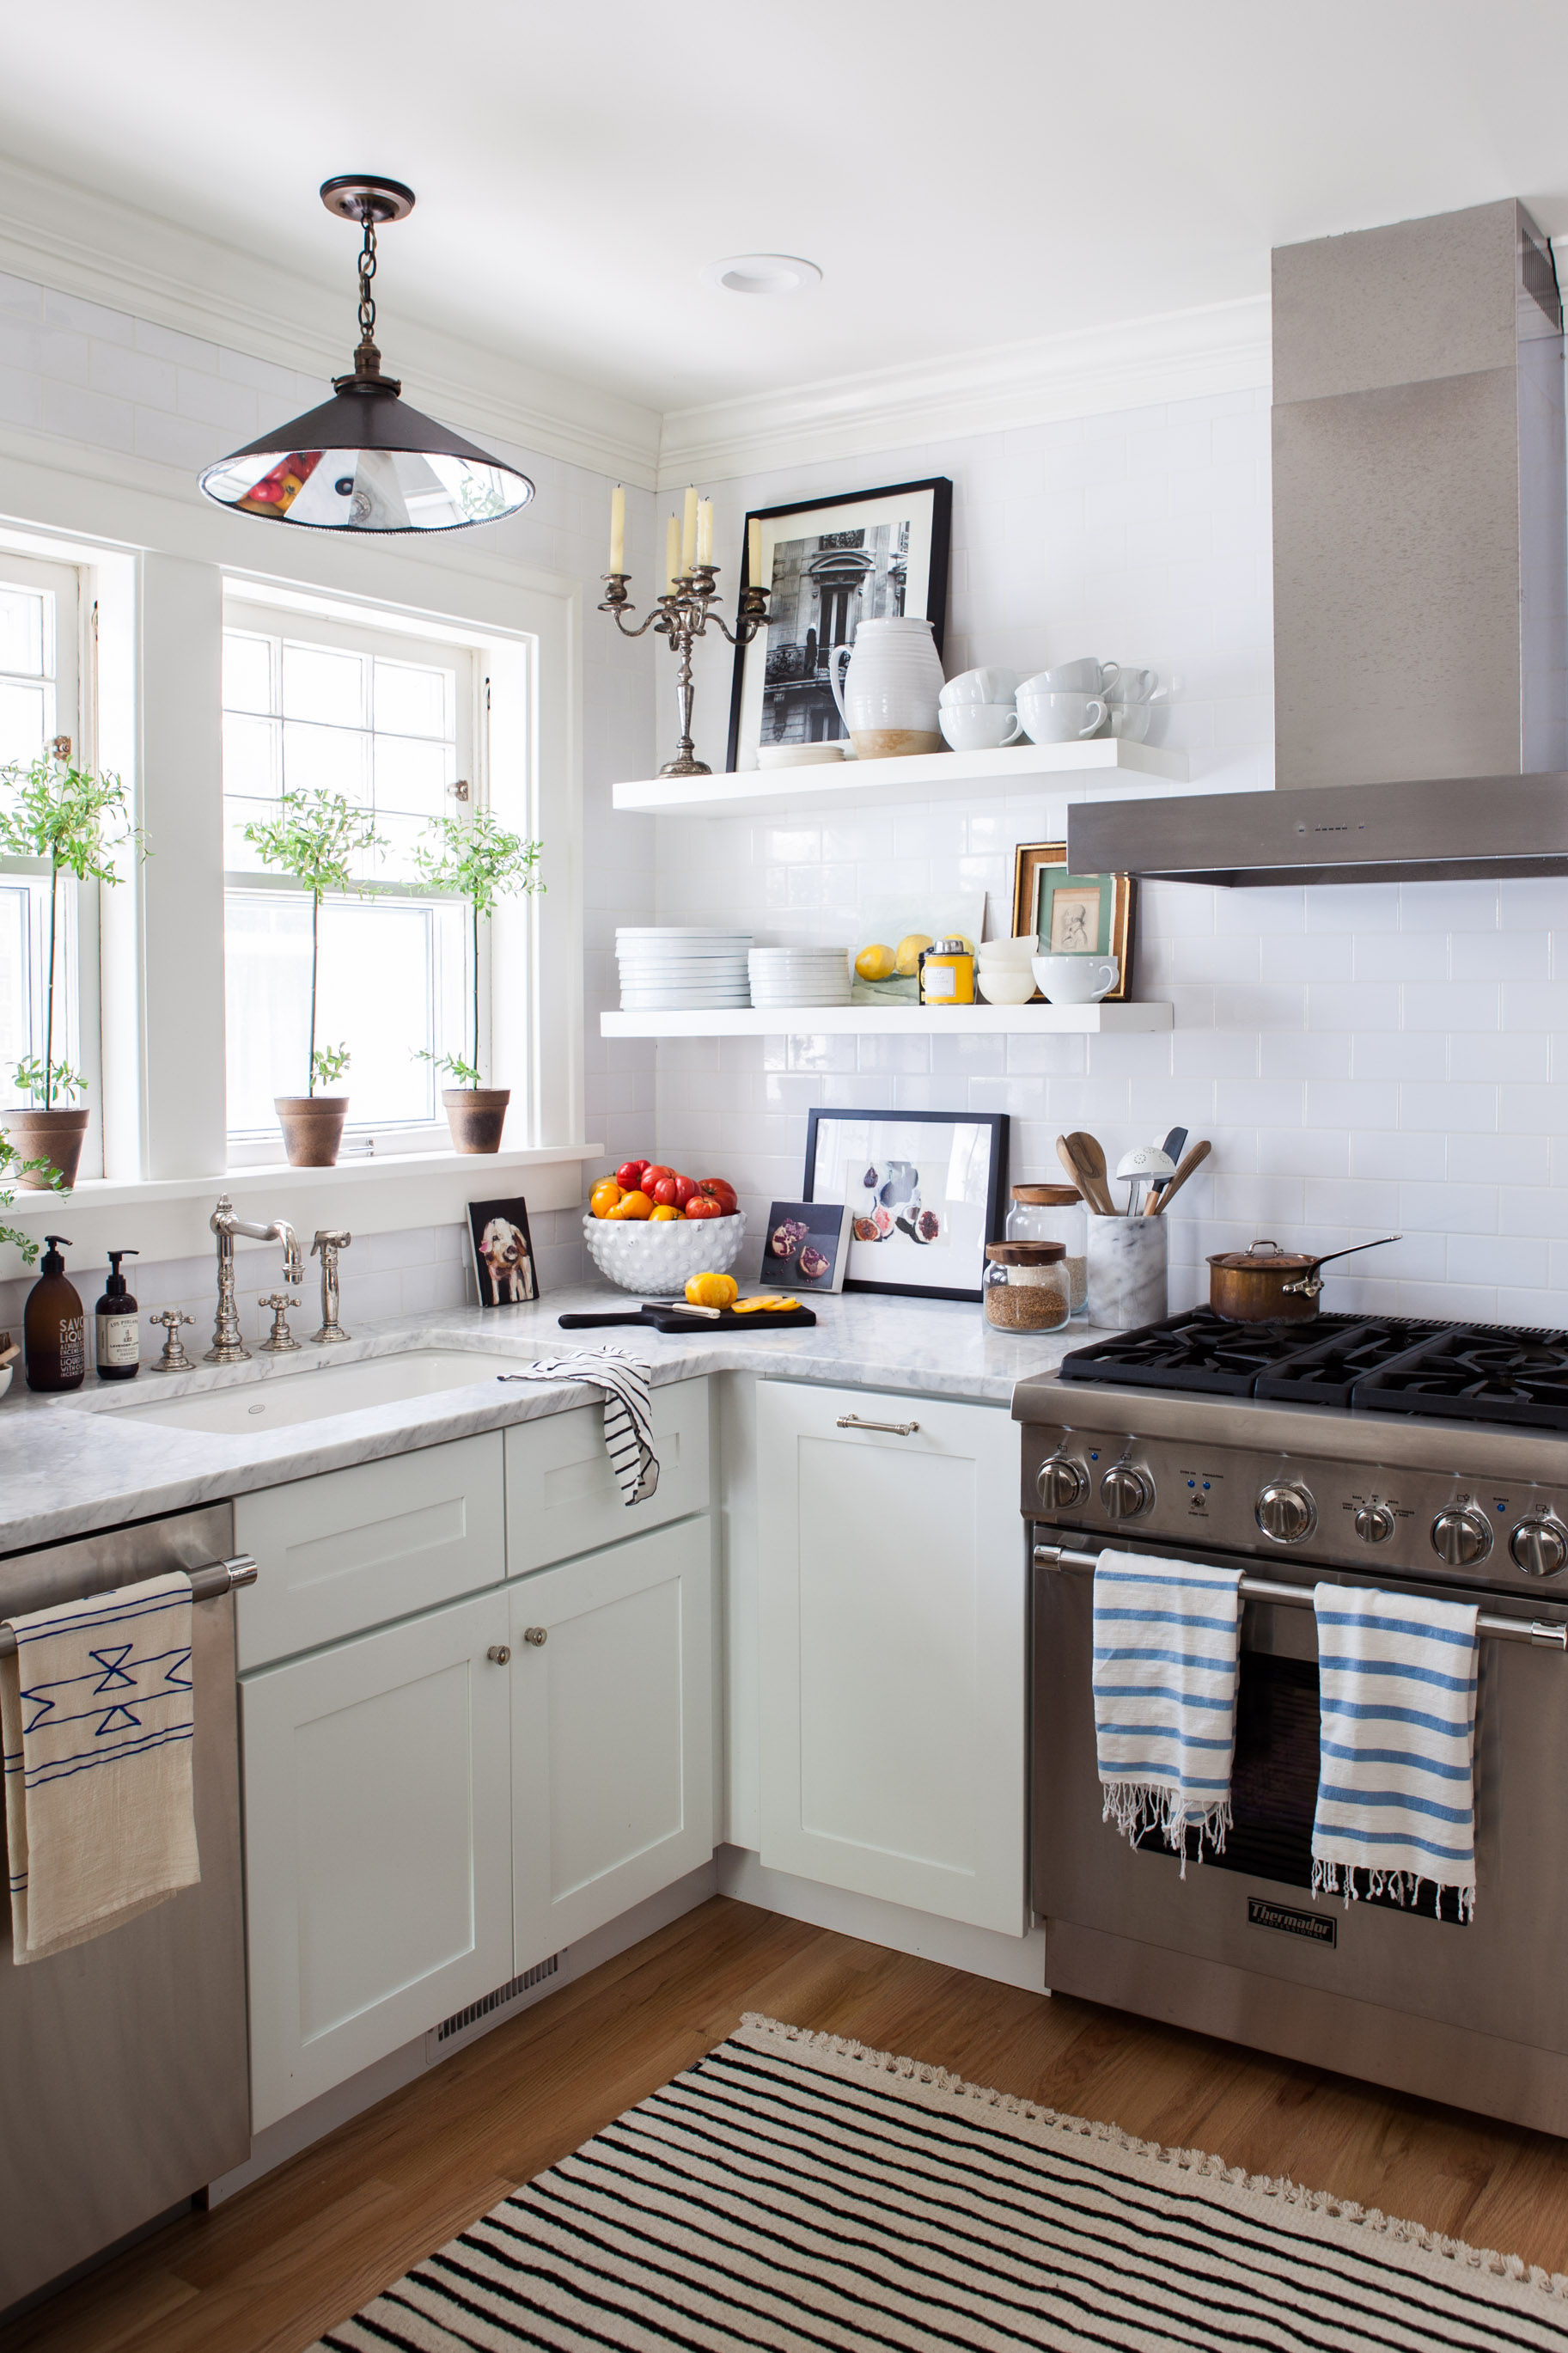 """After nearly a decade of apartment dwelling in New York, Michelle was thrilled to design her first """"real"""" kitchen and learn how to cook.  Figs by Giulia Bianchi  and  Untitled by Pavel Feinstein  add a splash of color to the whitewashed space.Photo by  Marta Xochilt Perez"""